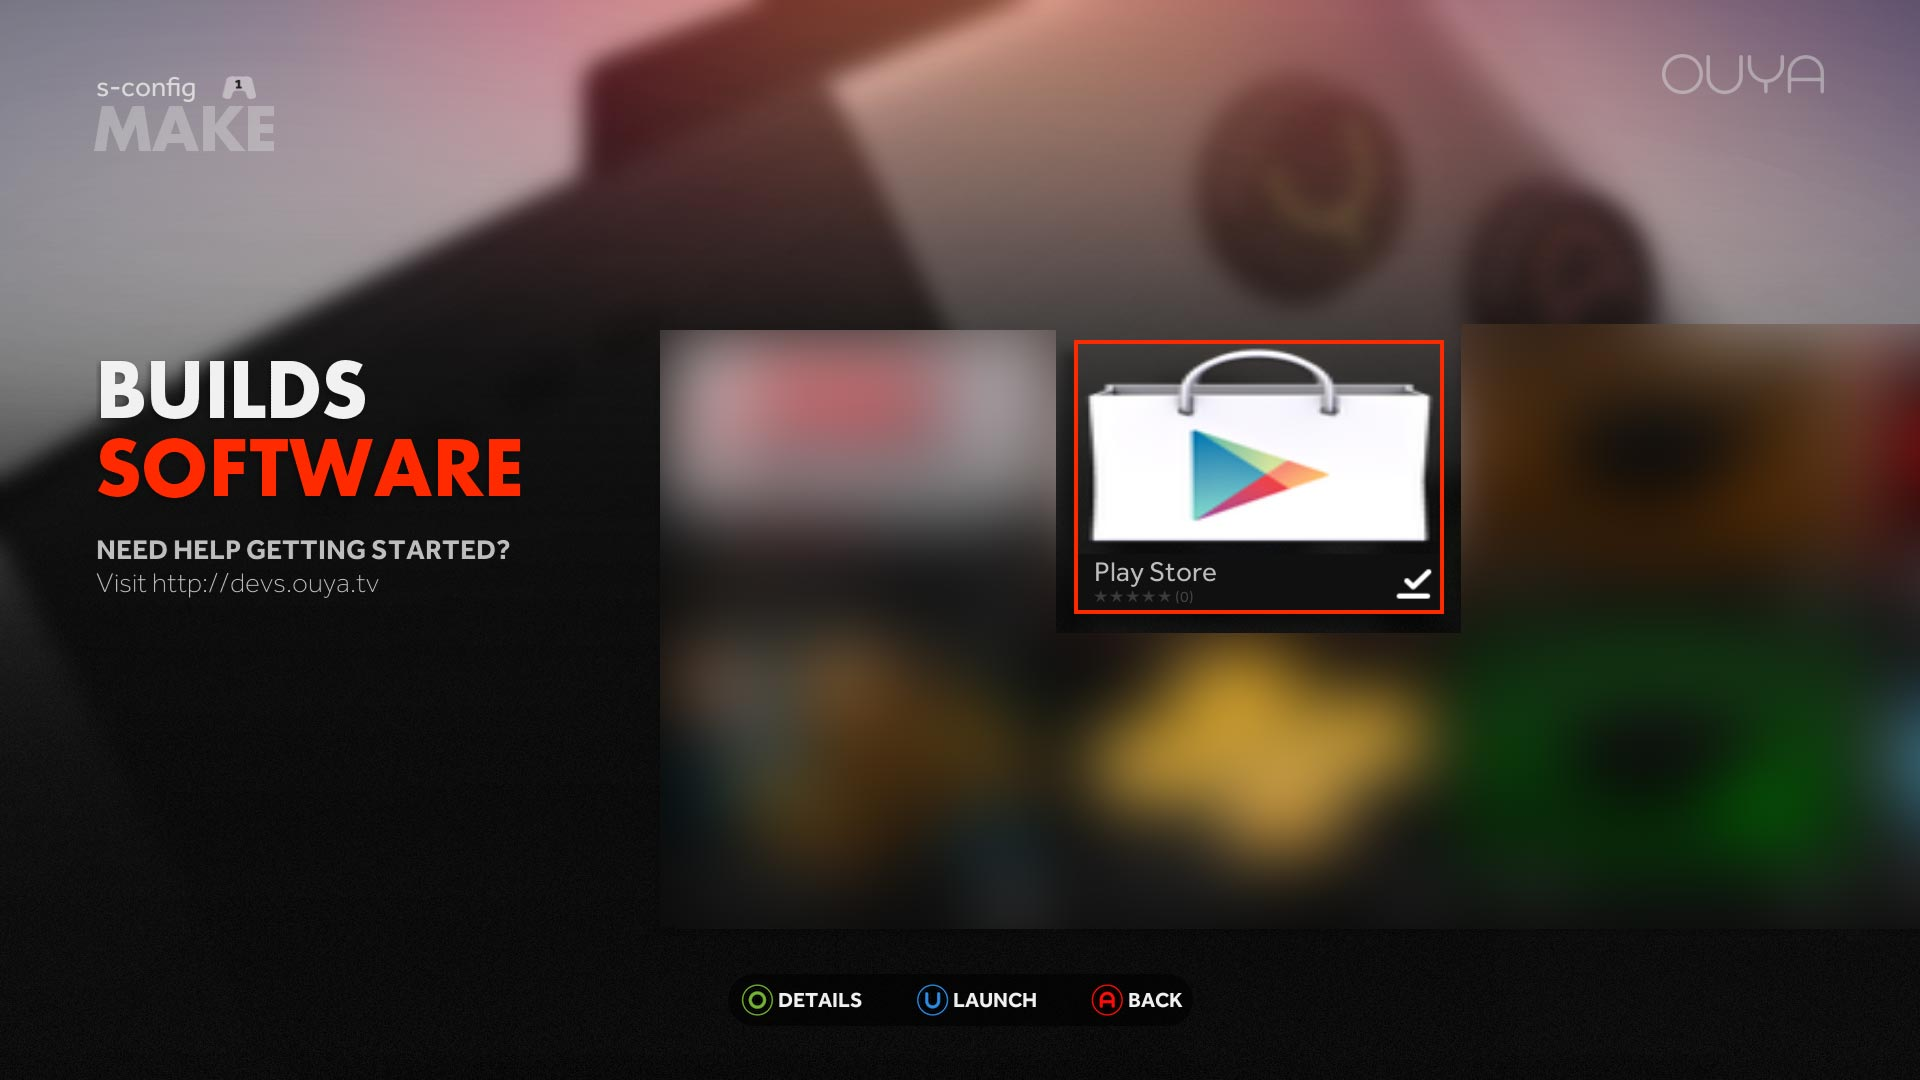 Google Play Store on the Ouya complete.